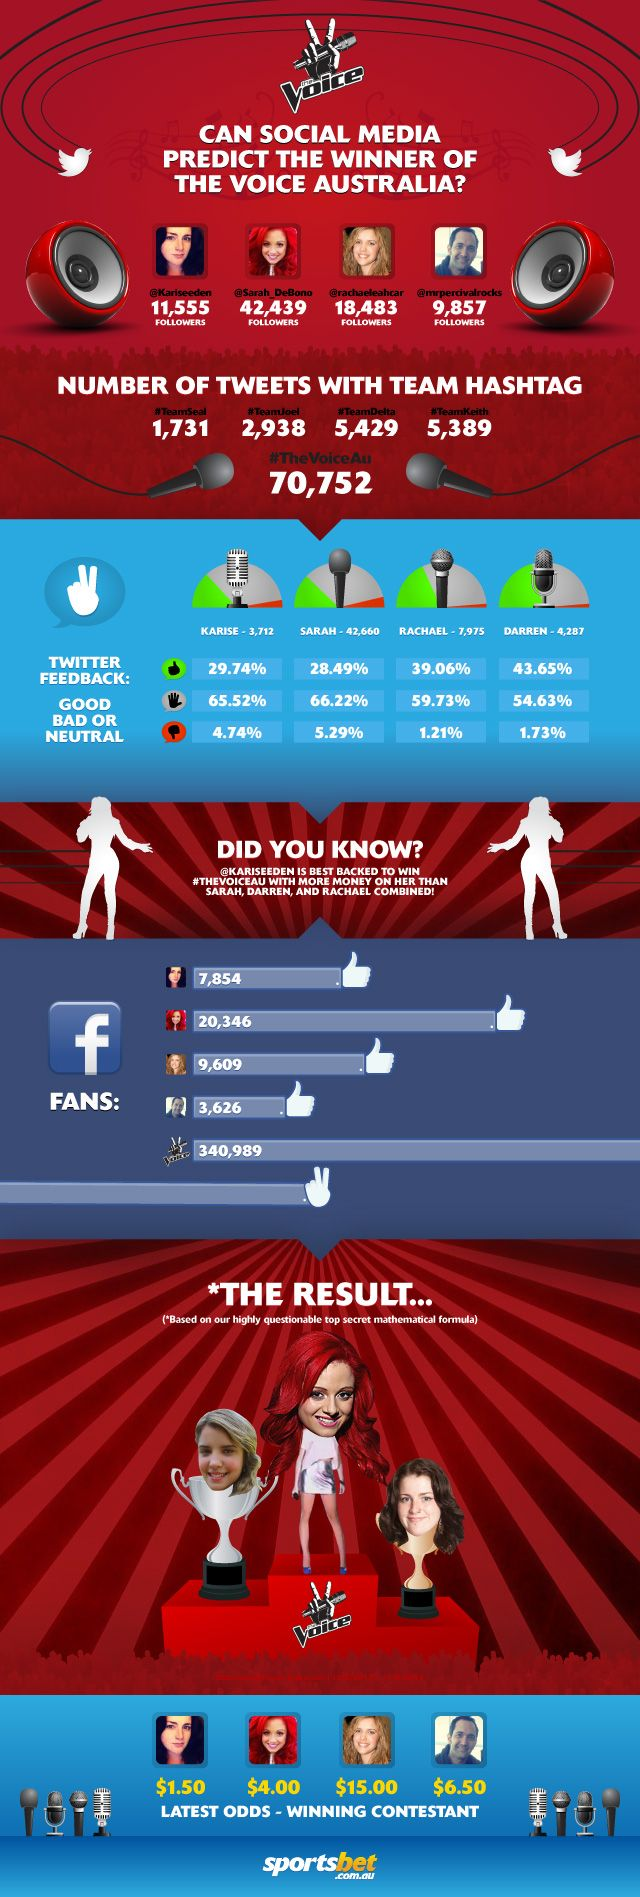 The Voice - Infographic - http://bit.ly/K7aW4r